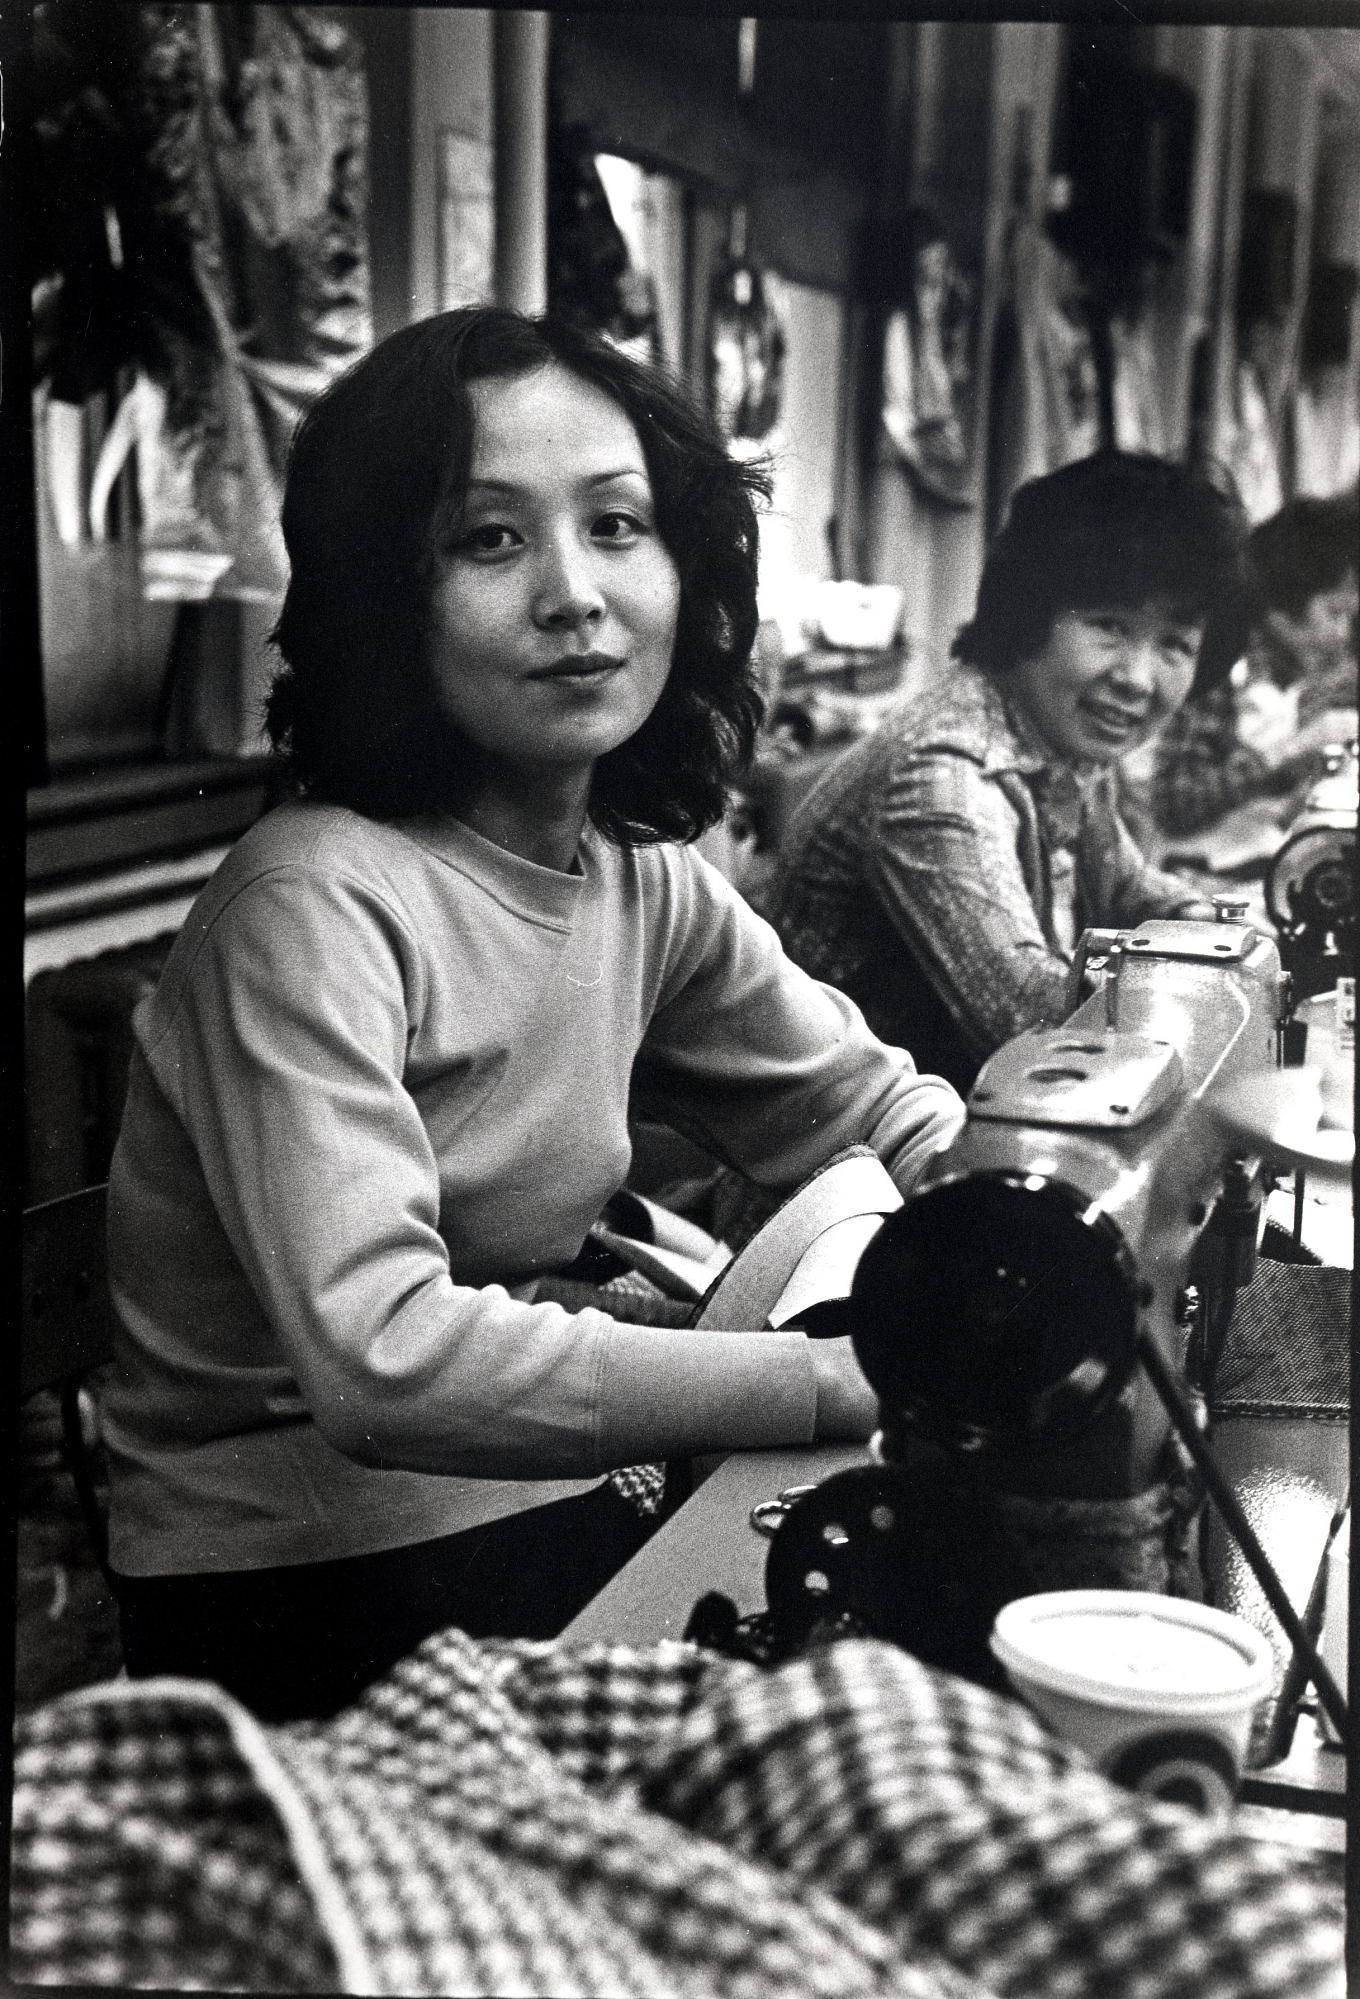 Chinese garment workers, Chinatown, New York City, about 1983